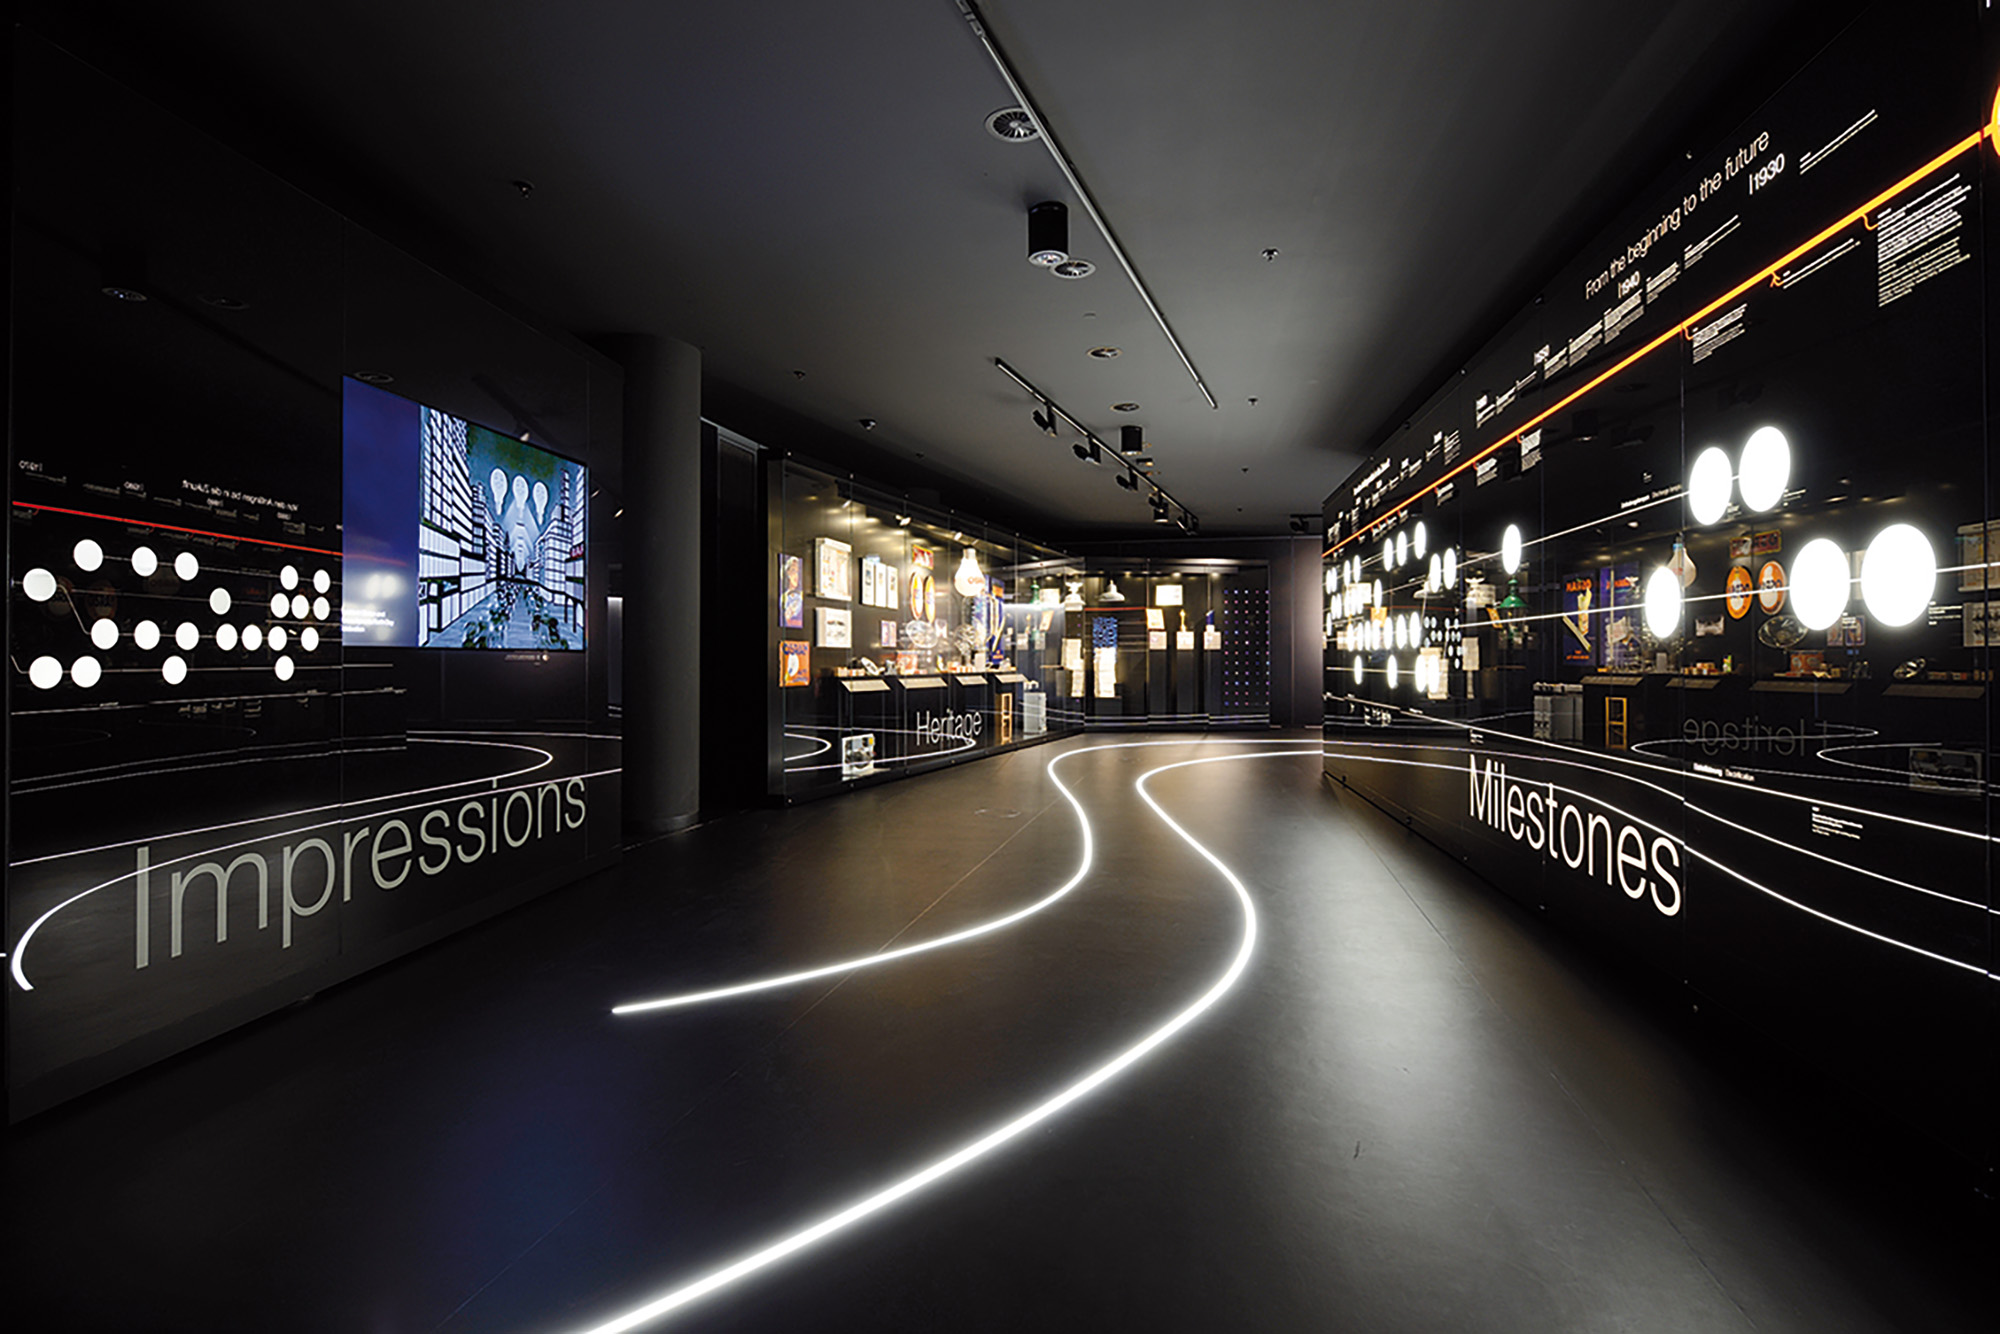 Numerous audio-visual exhibits accompany visitors on their journey through the company's history ngeschichte